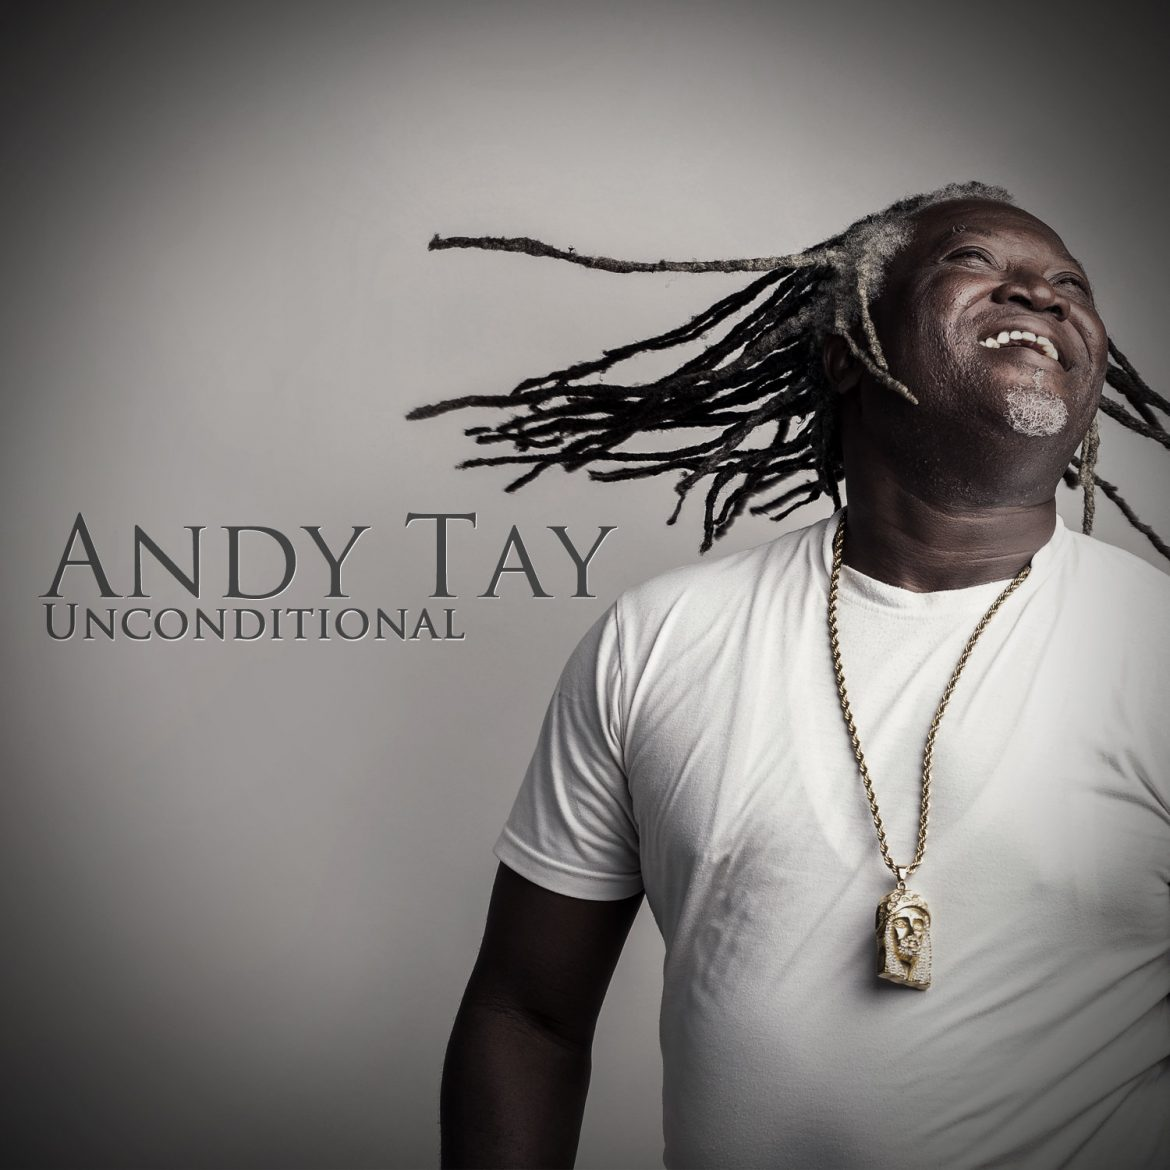 Andy Tay